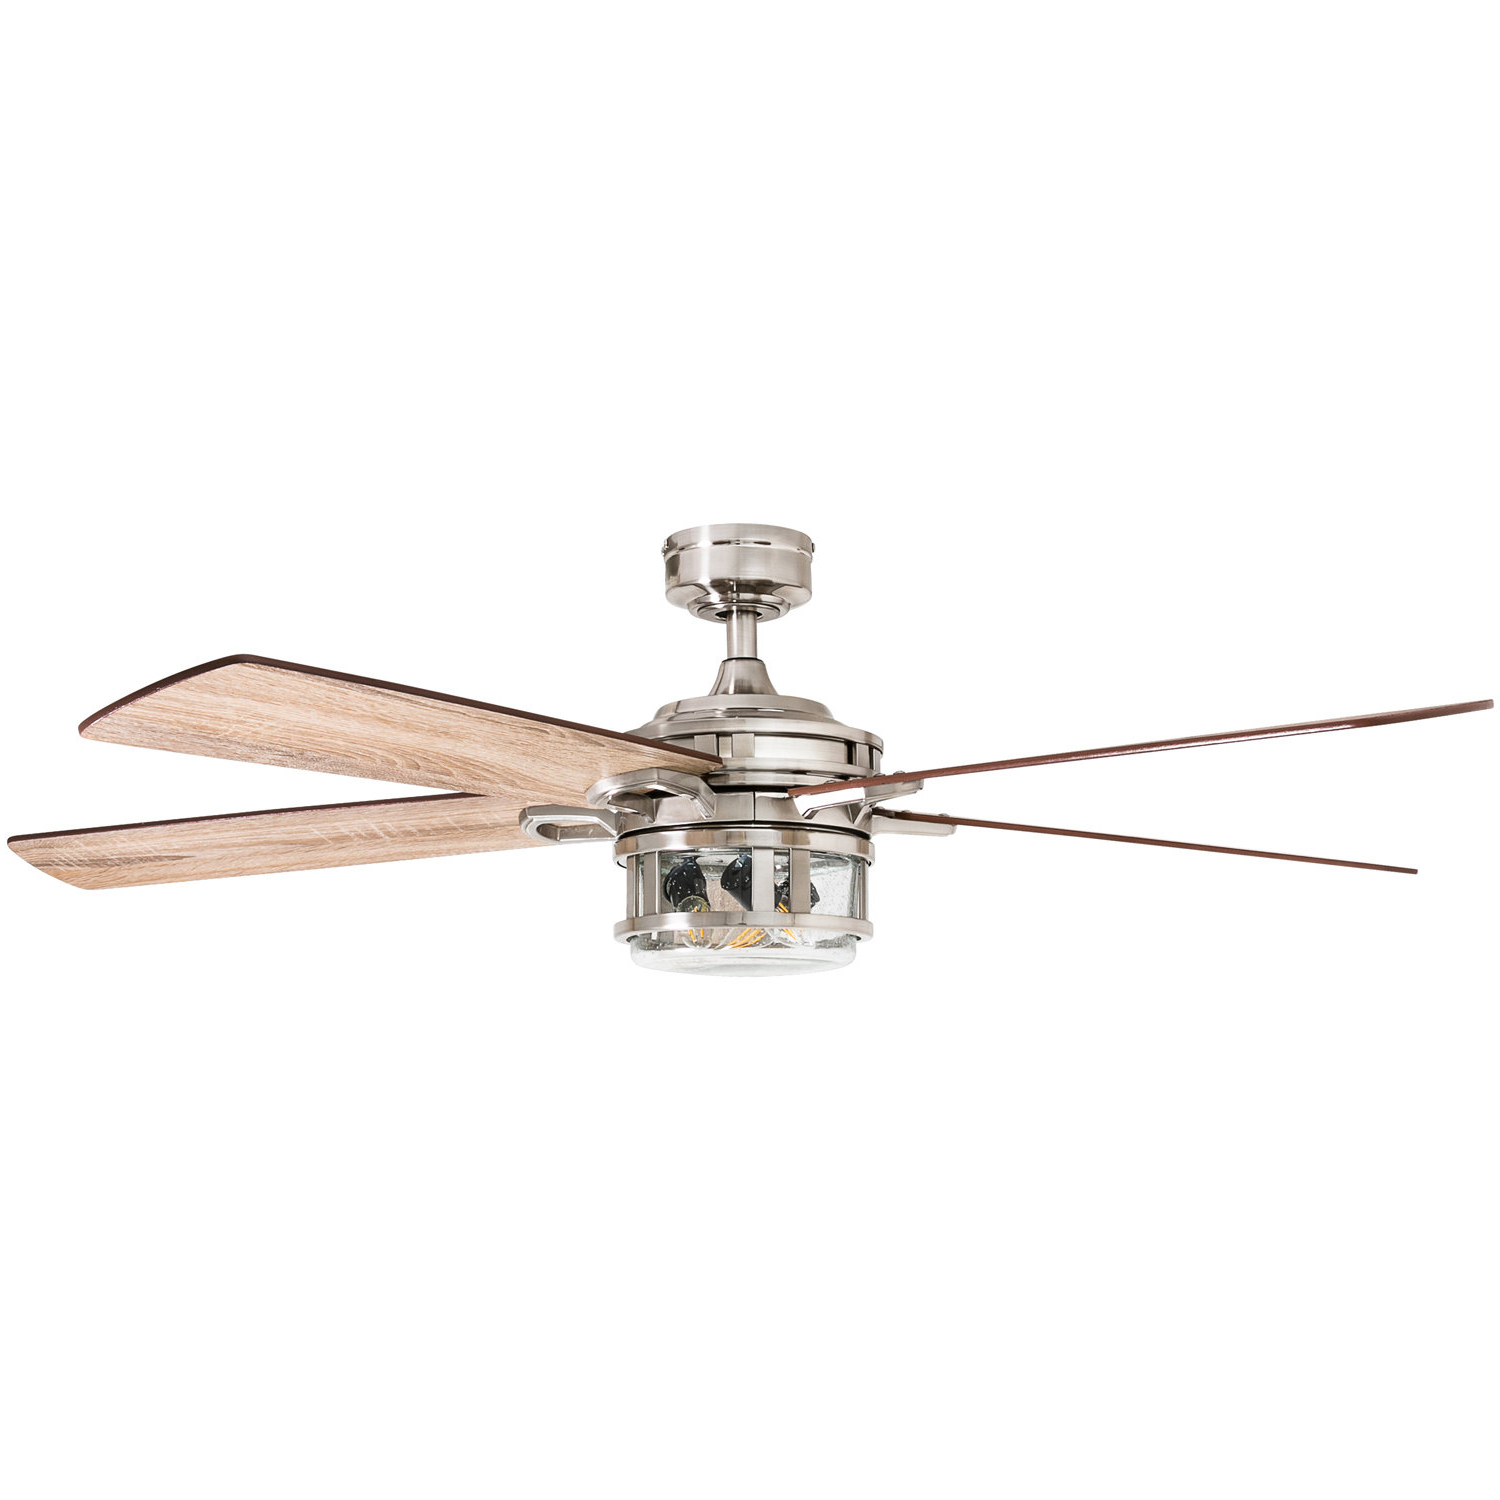 "Lindsay 5 Blade Ceiling Fans In Widely Used 52"" Rafe 5 Blades Led Ceiling Fan Light Kit Included (Gallery 14 of 20)"